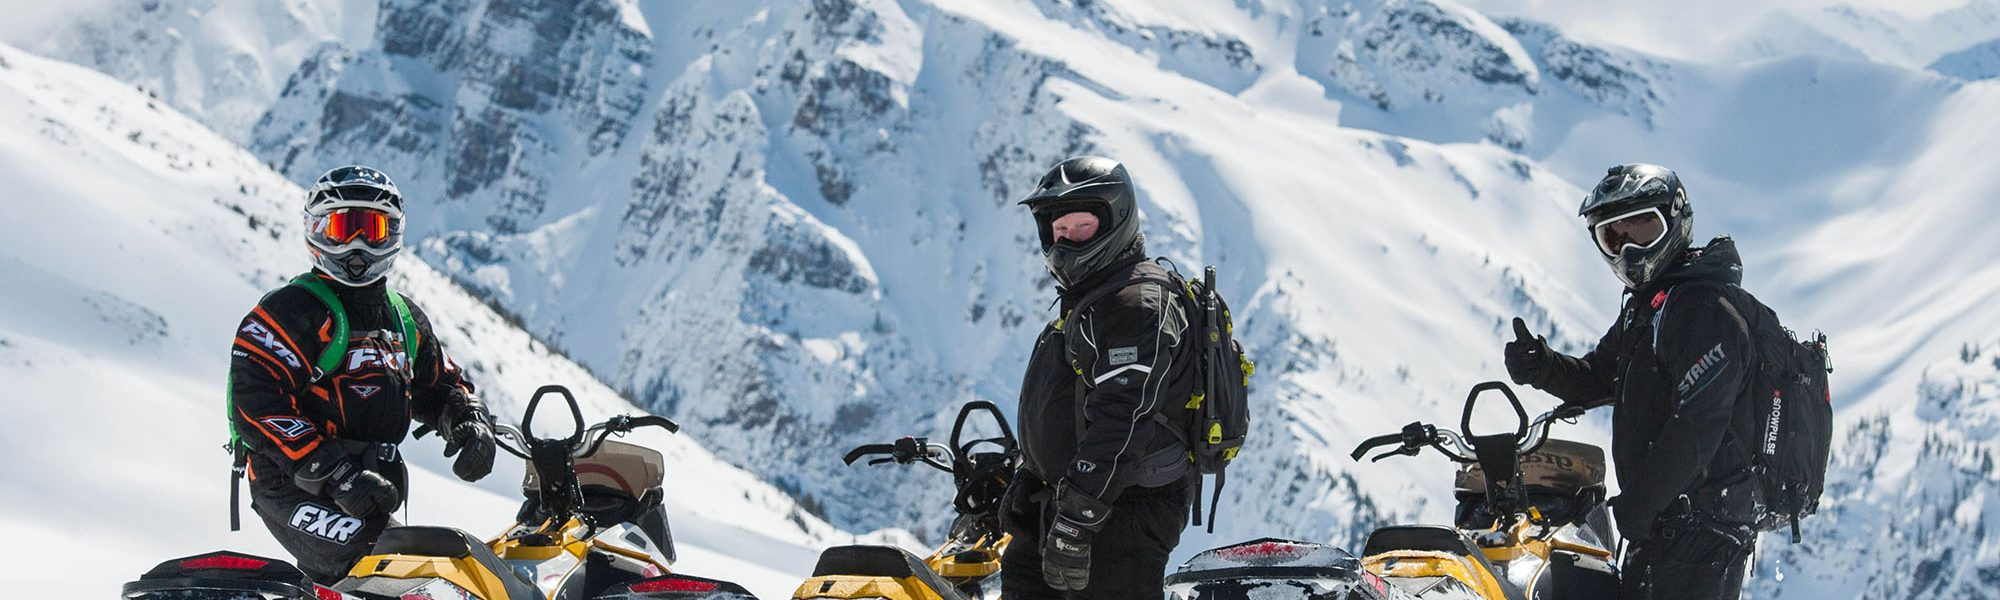 golden bc snowmobile rentals